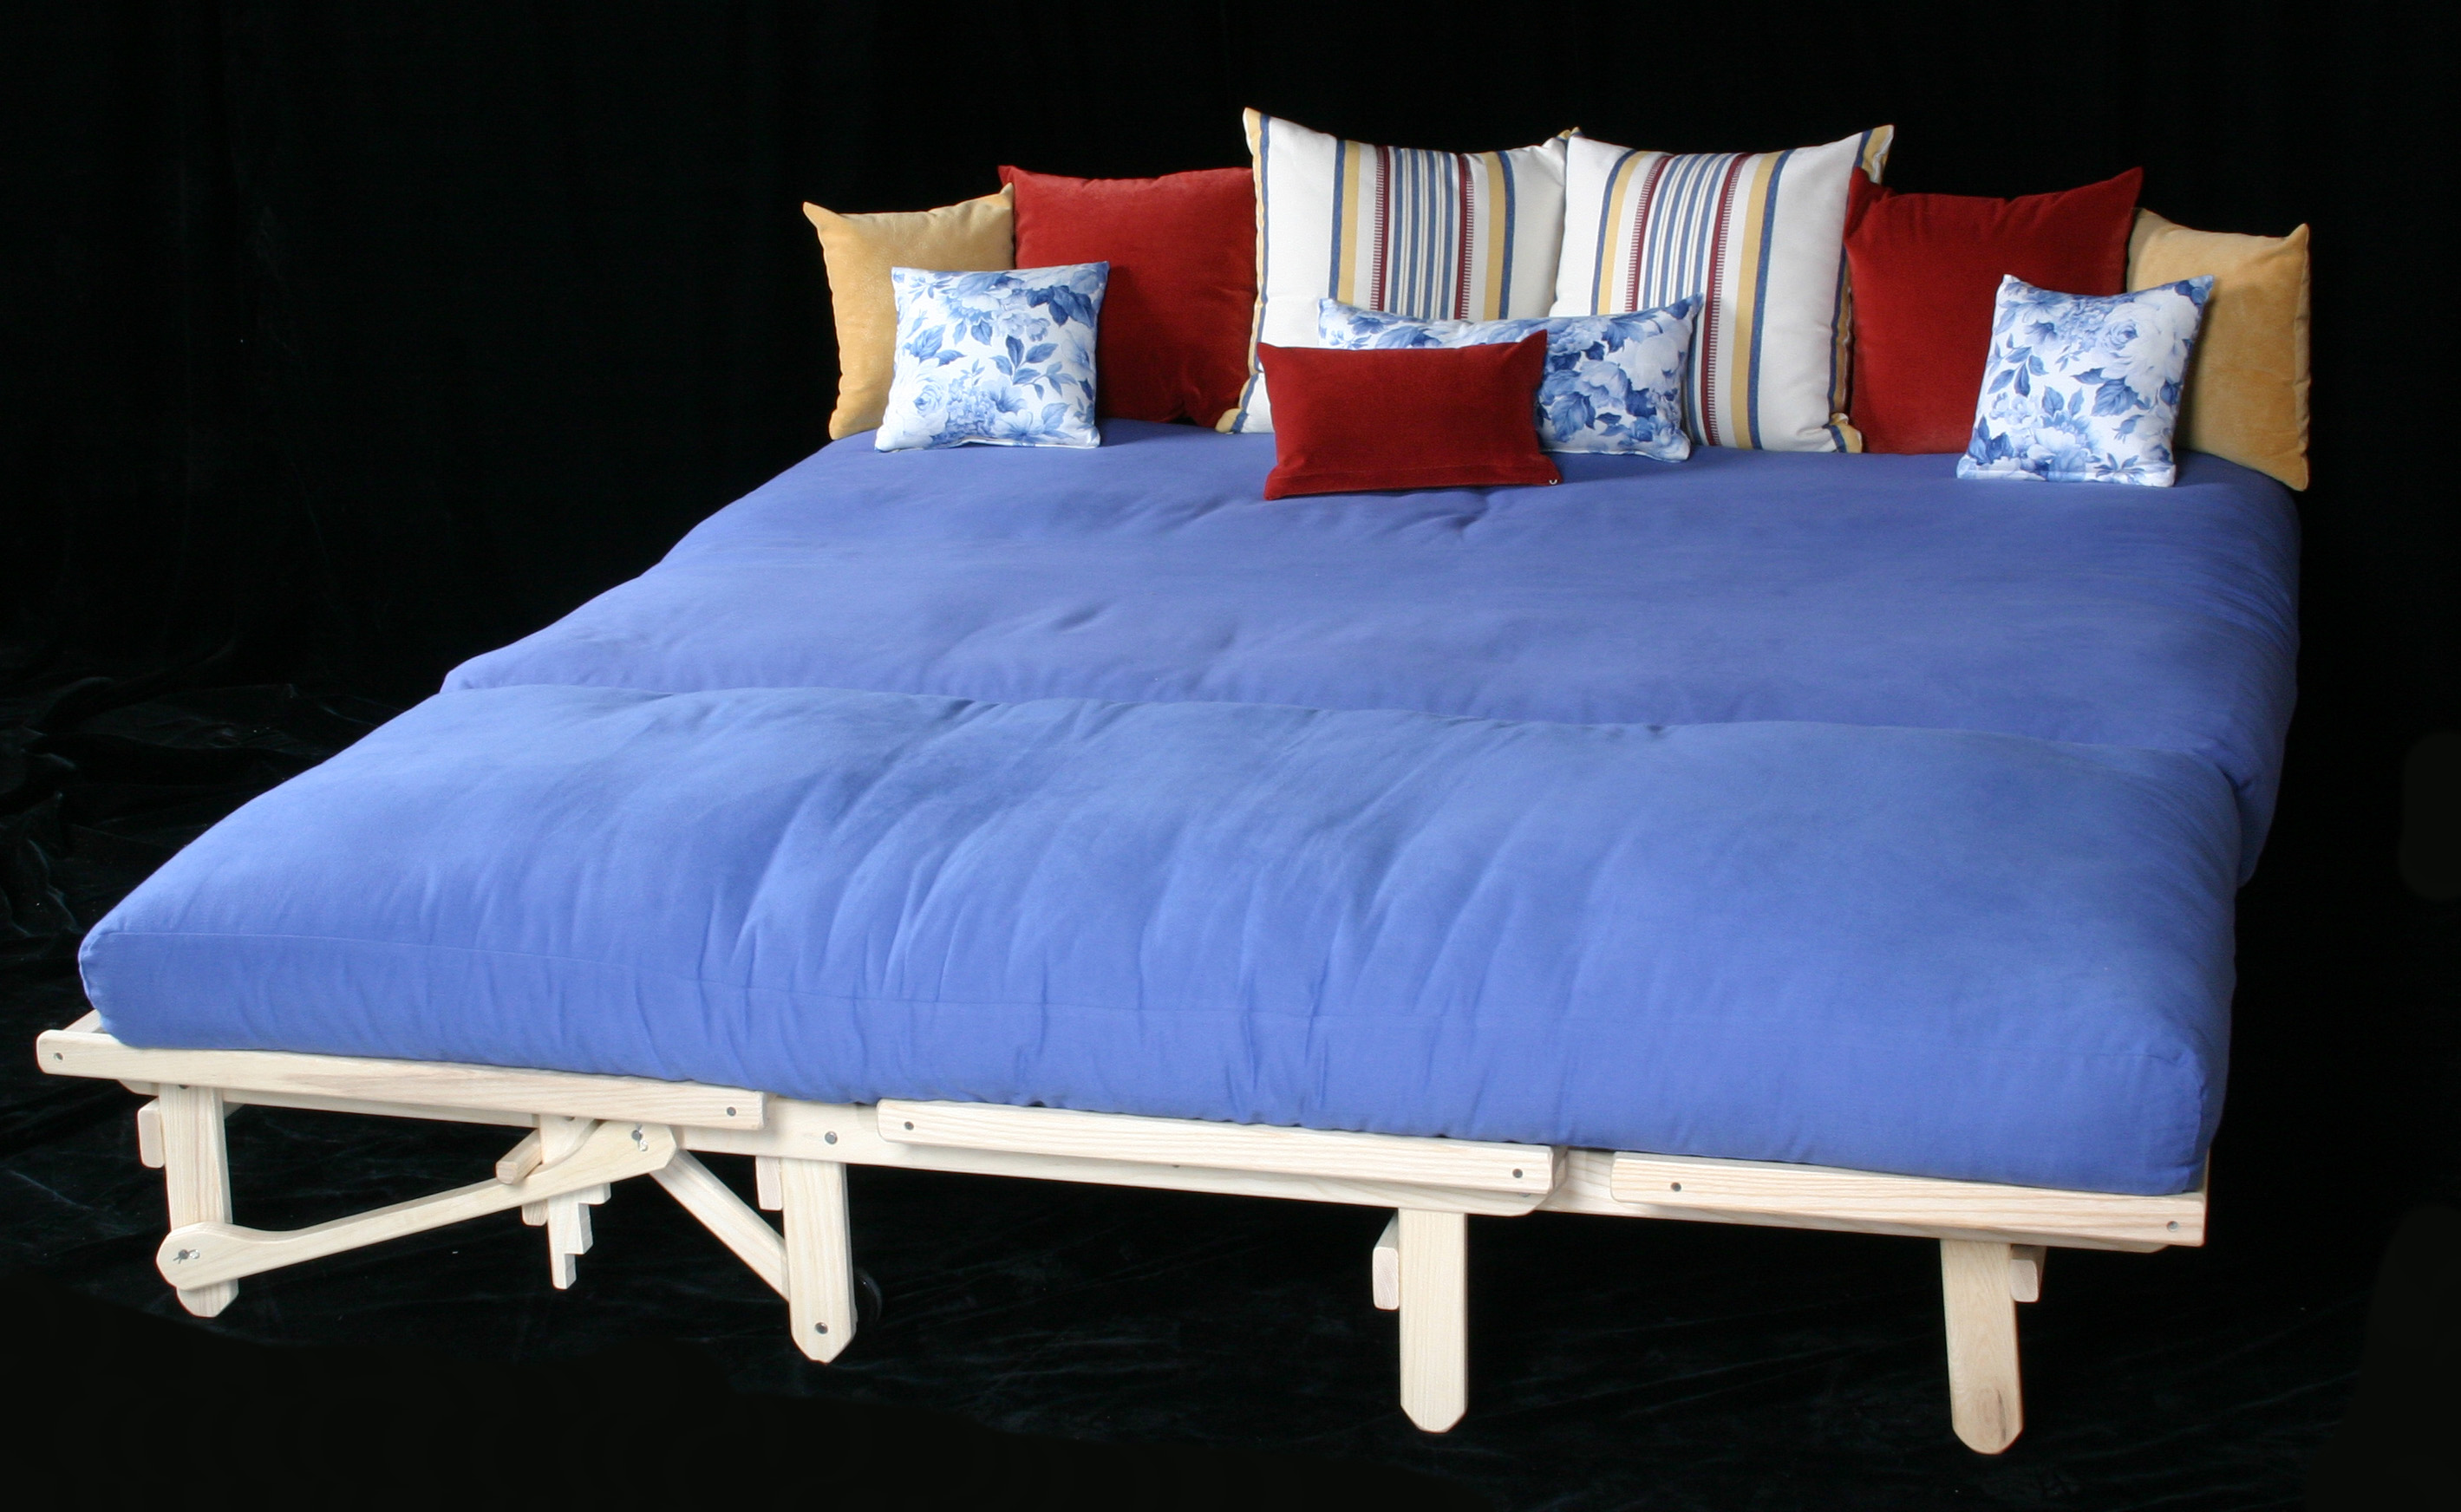 Sofa with Cot Chaise make a King Bed